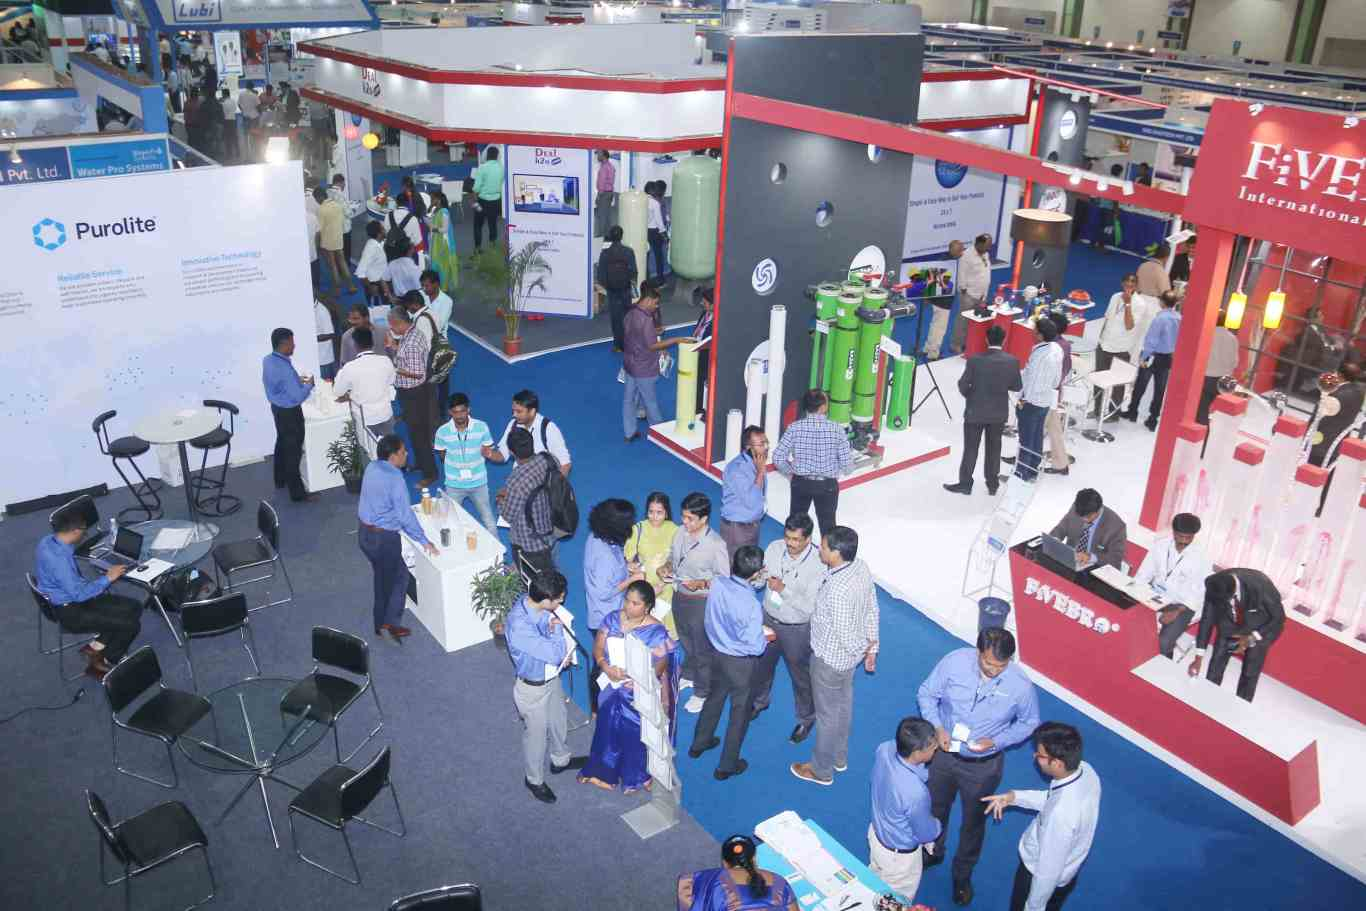 WELCOME TO WATER EXPO 2019, Chennai, Tamil Nadu, India